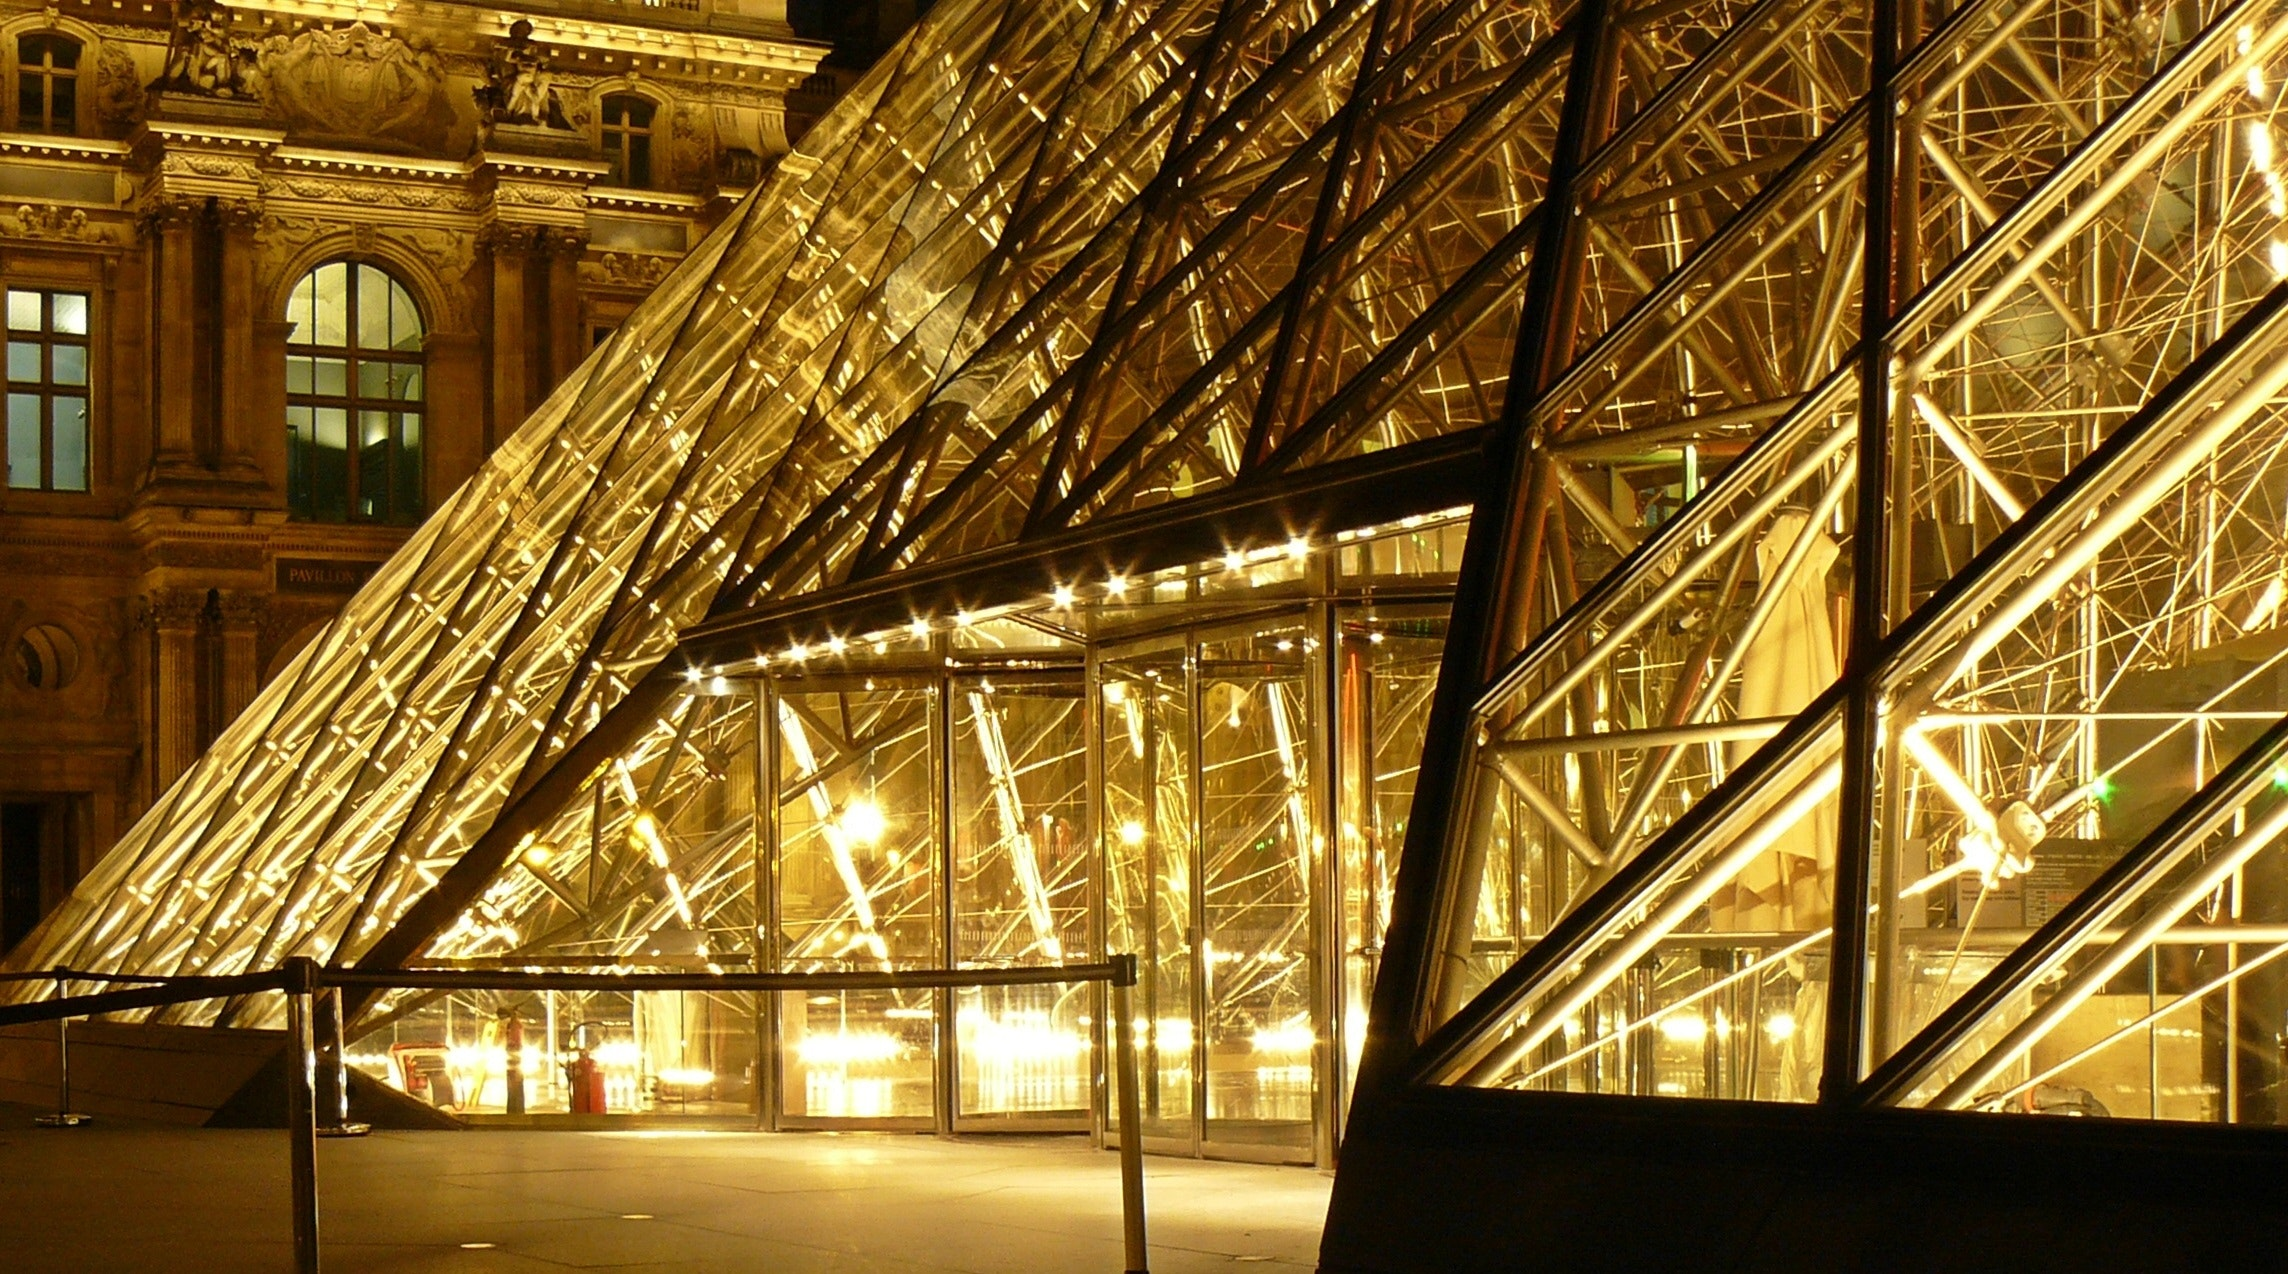 Metal frame glass pyramid outside a museum with yellow lights during nighttime photo